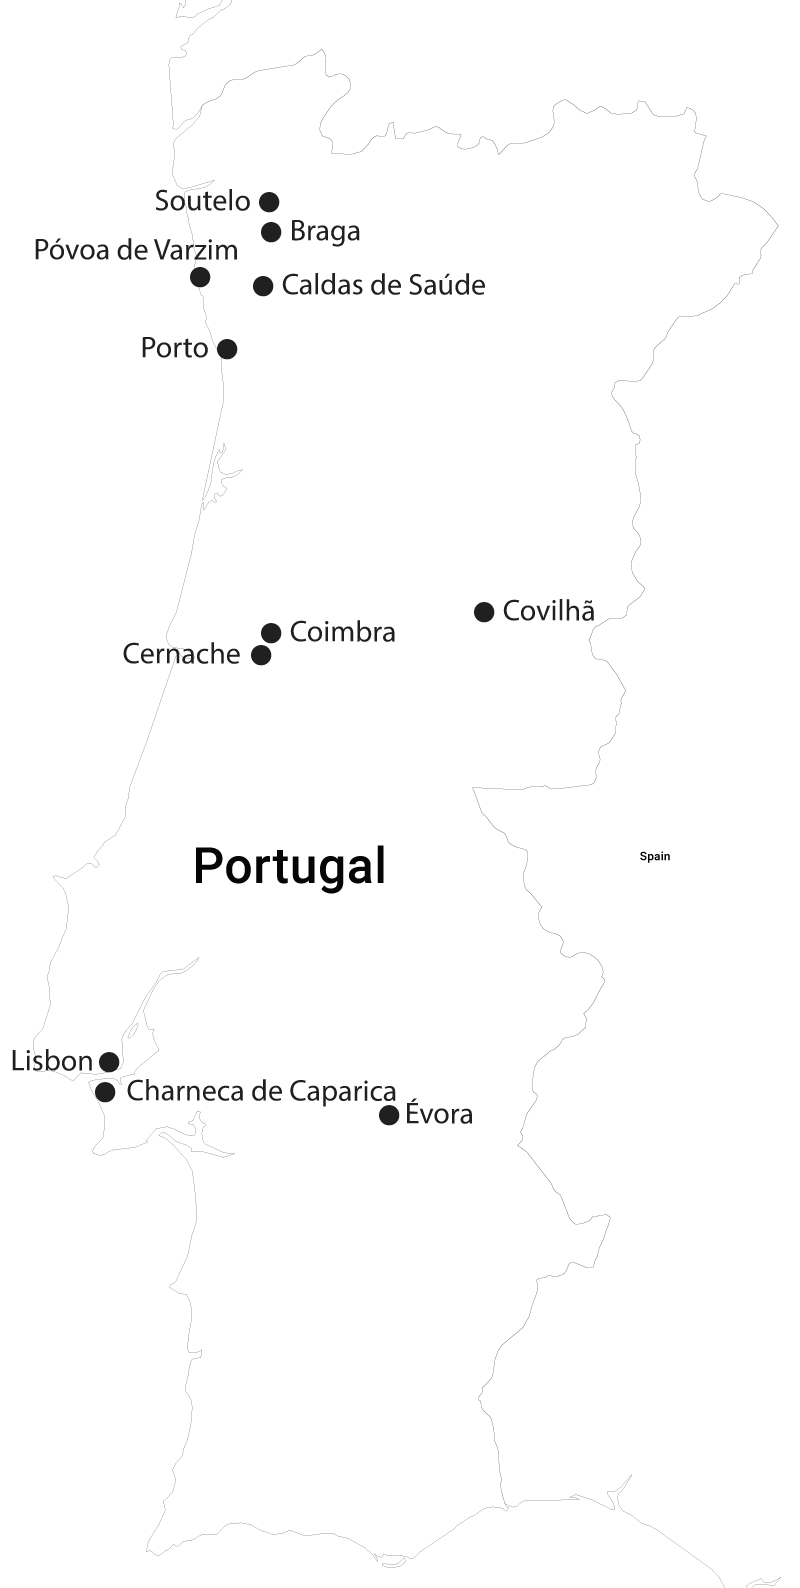 Sj Europe - News on map of portugal, humans in portugal, lisbon portugal, capital of portugal,